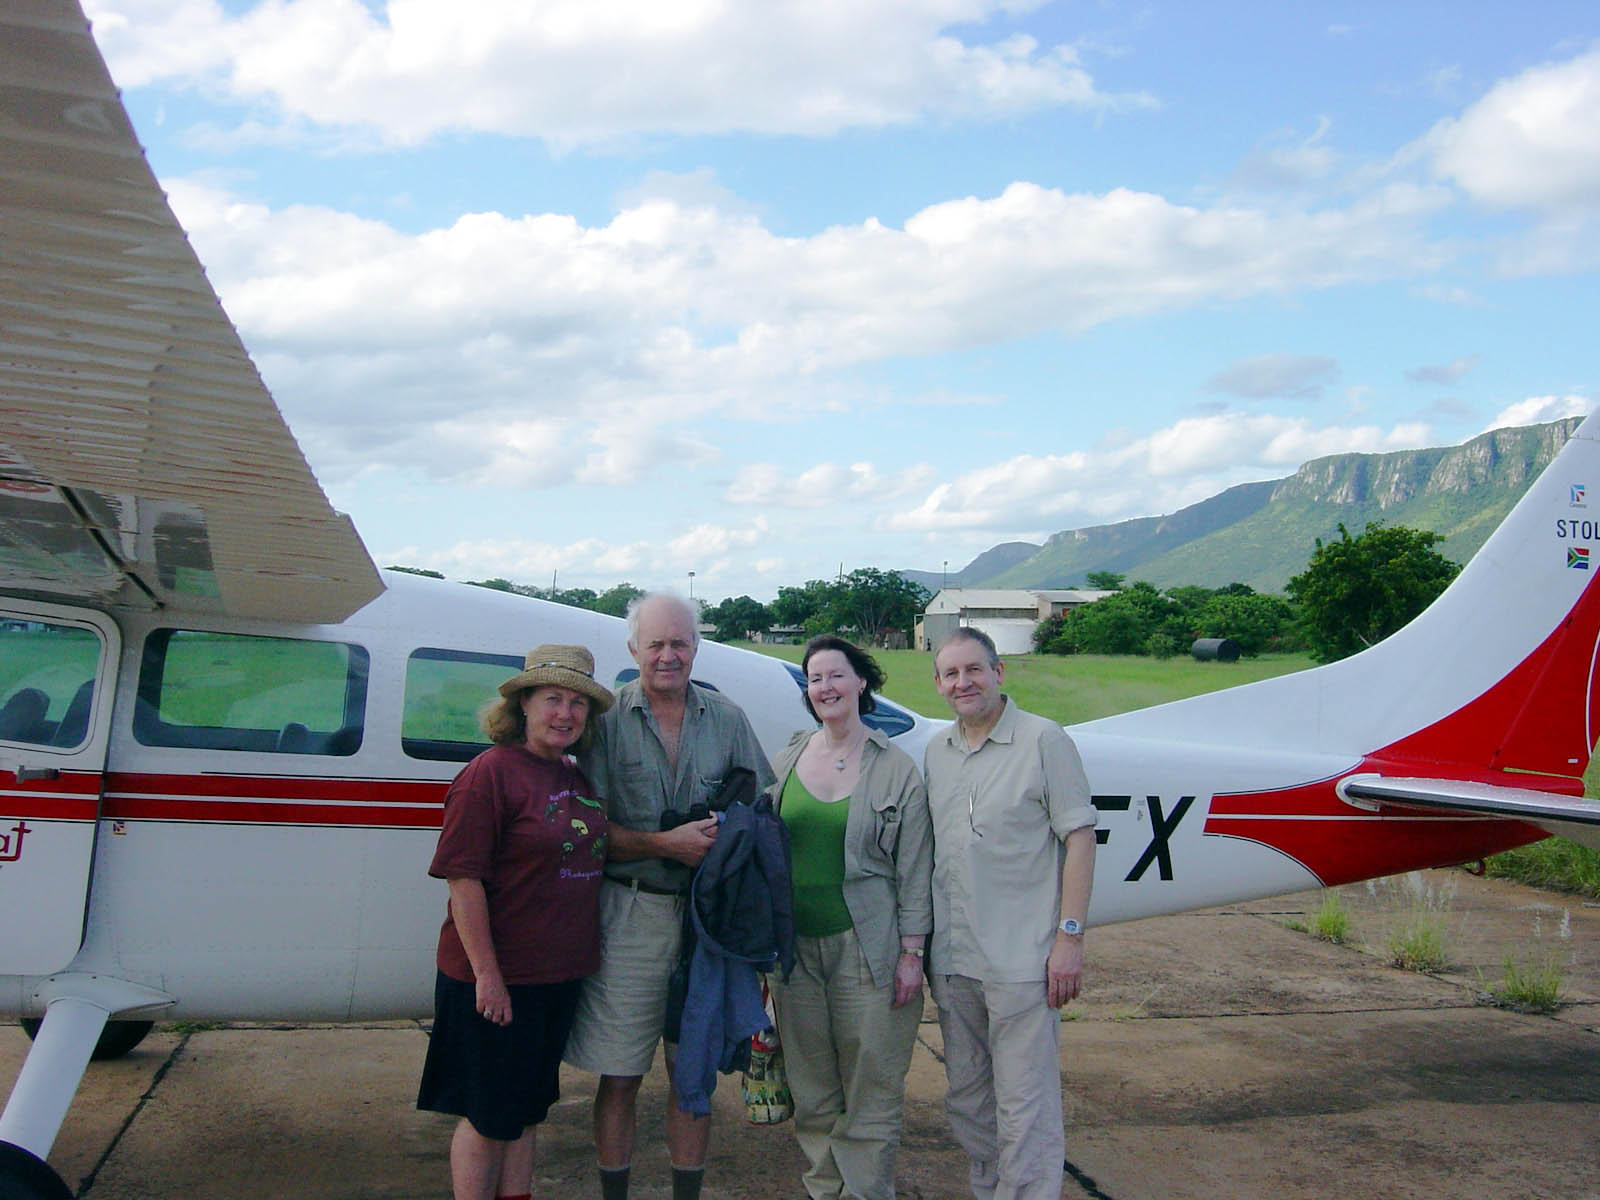 Zululand Mission Air Transport Project - Rotary Club of